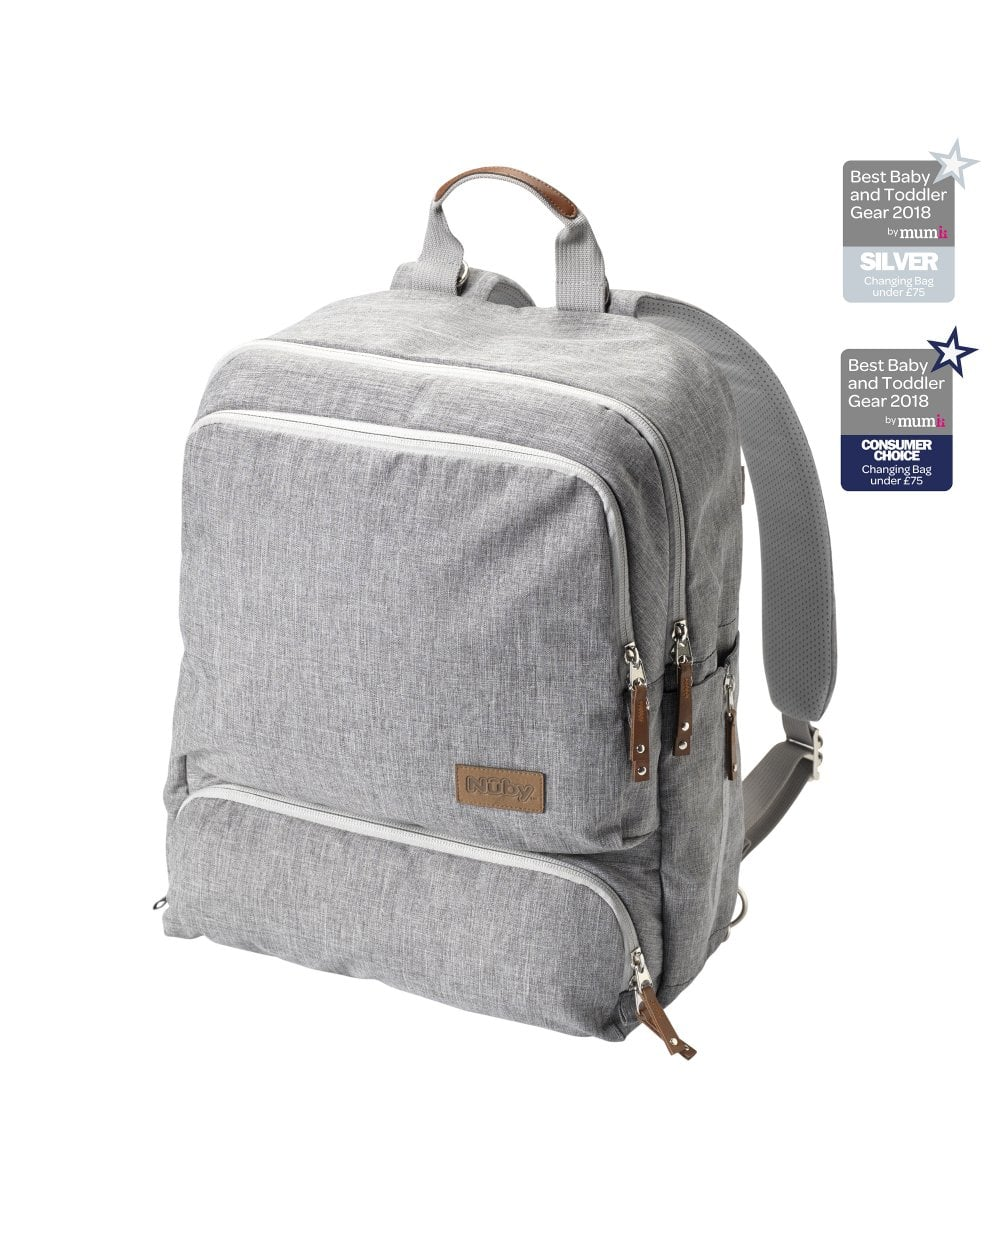 Grey Backpack Baby Changing Bag Out